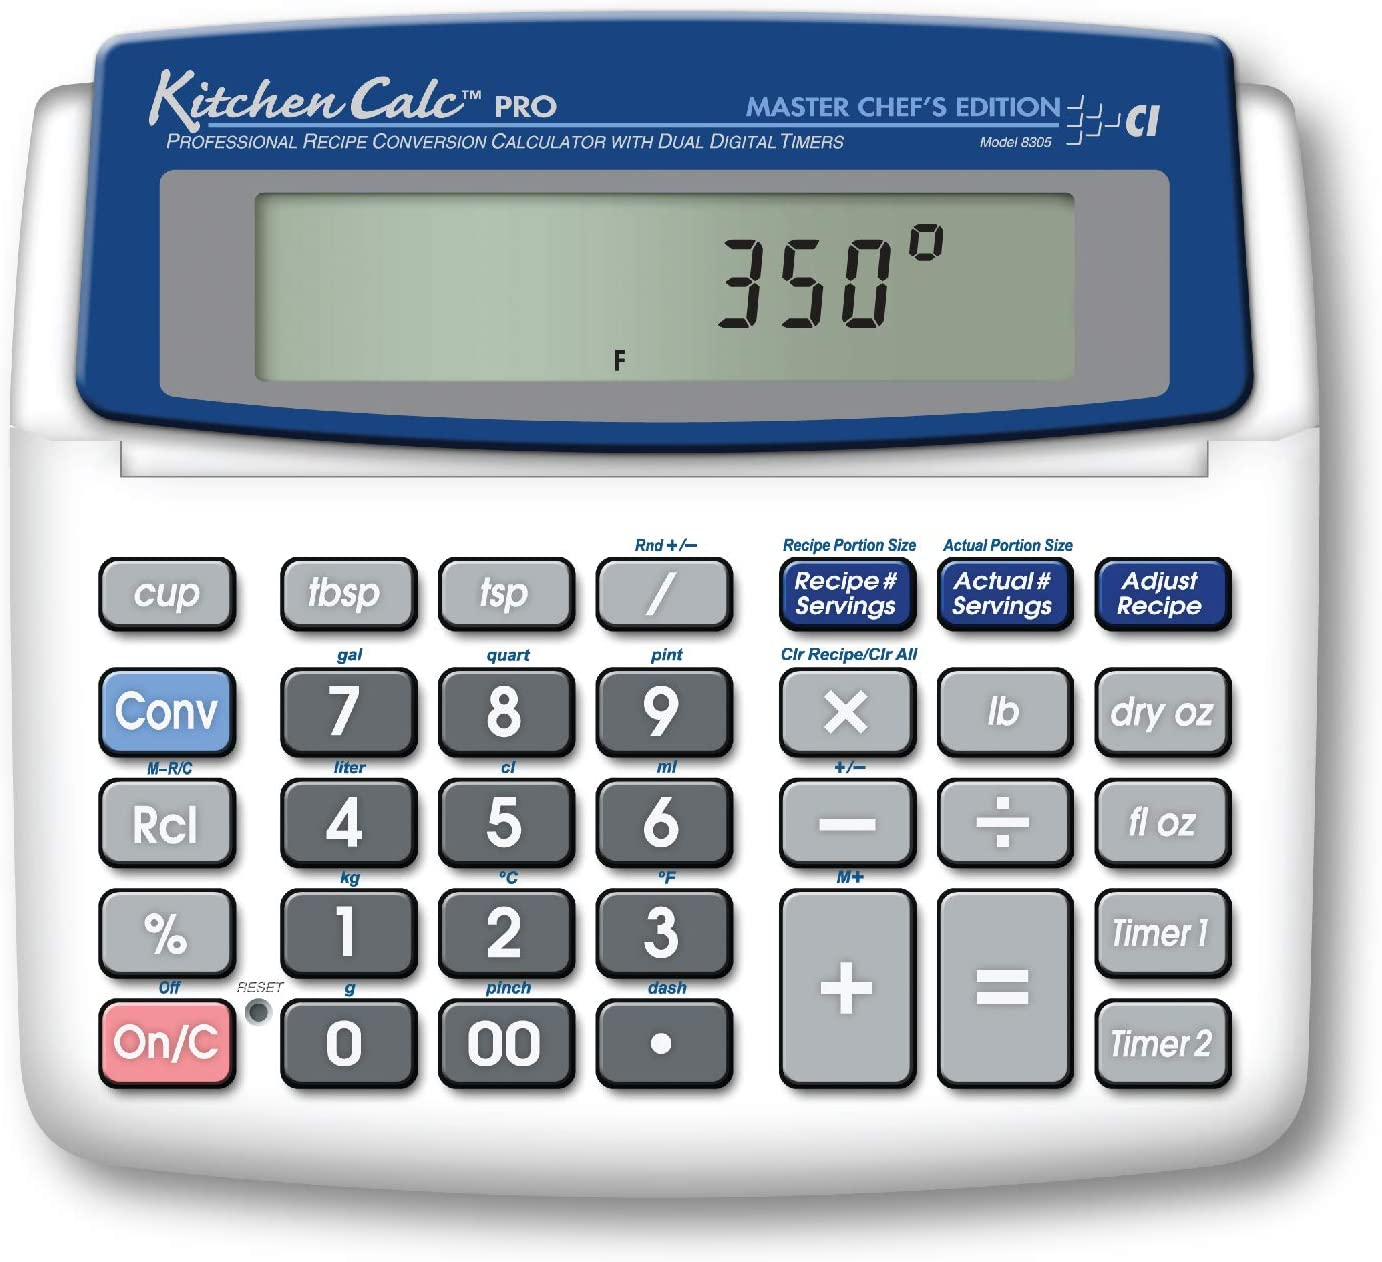 Calculated Industries 8305 KitchenCalc PRO Recipe Conversion and Culinary Math Calculator with 2 Digital Timers for Chefs, Culinary Students, Home Cooks, Bakers, Brewers and BBQers | Recipe Scaling | Menu Planning | Portion Sizing